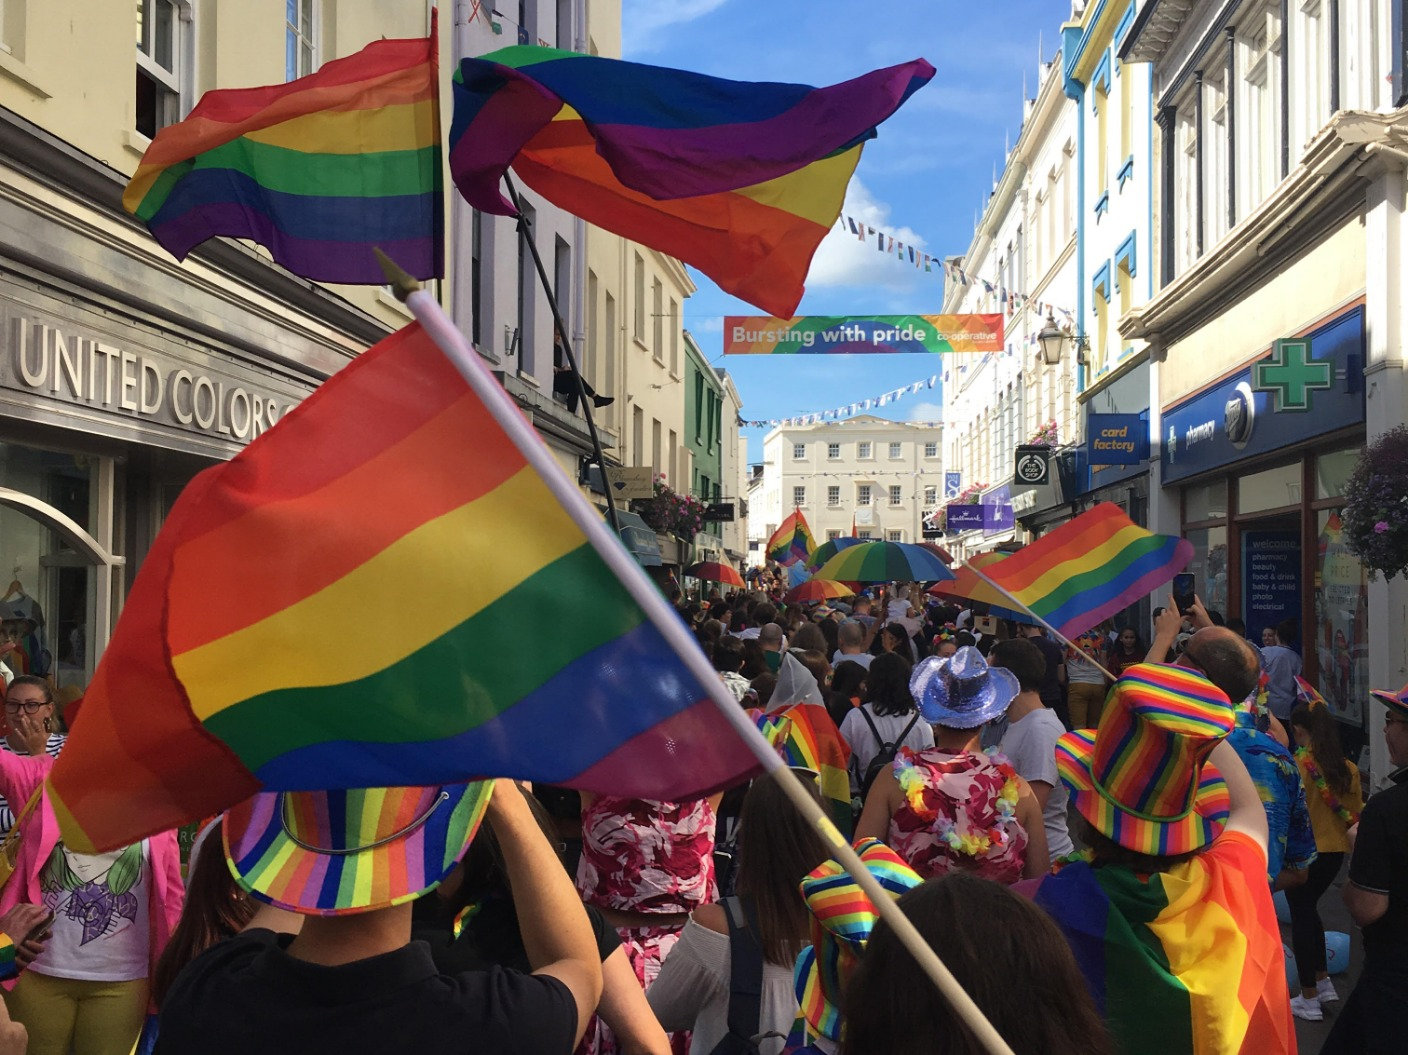 Maybe you would like to learn more about one of these? Date set for Channel Islands Pride 2021 | Channel | ITV News